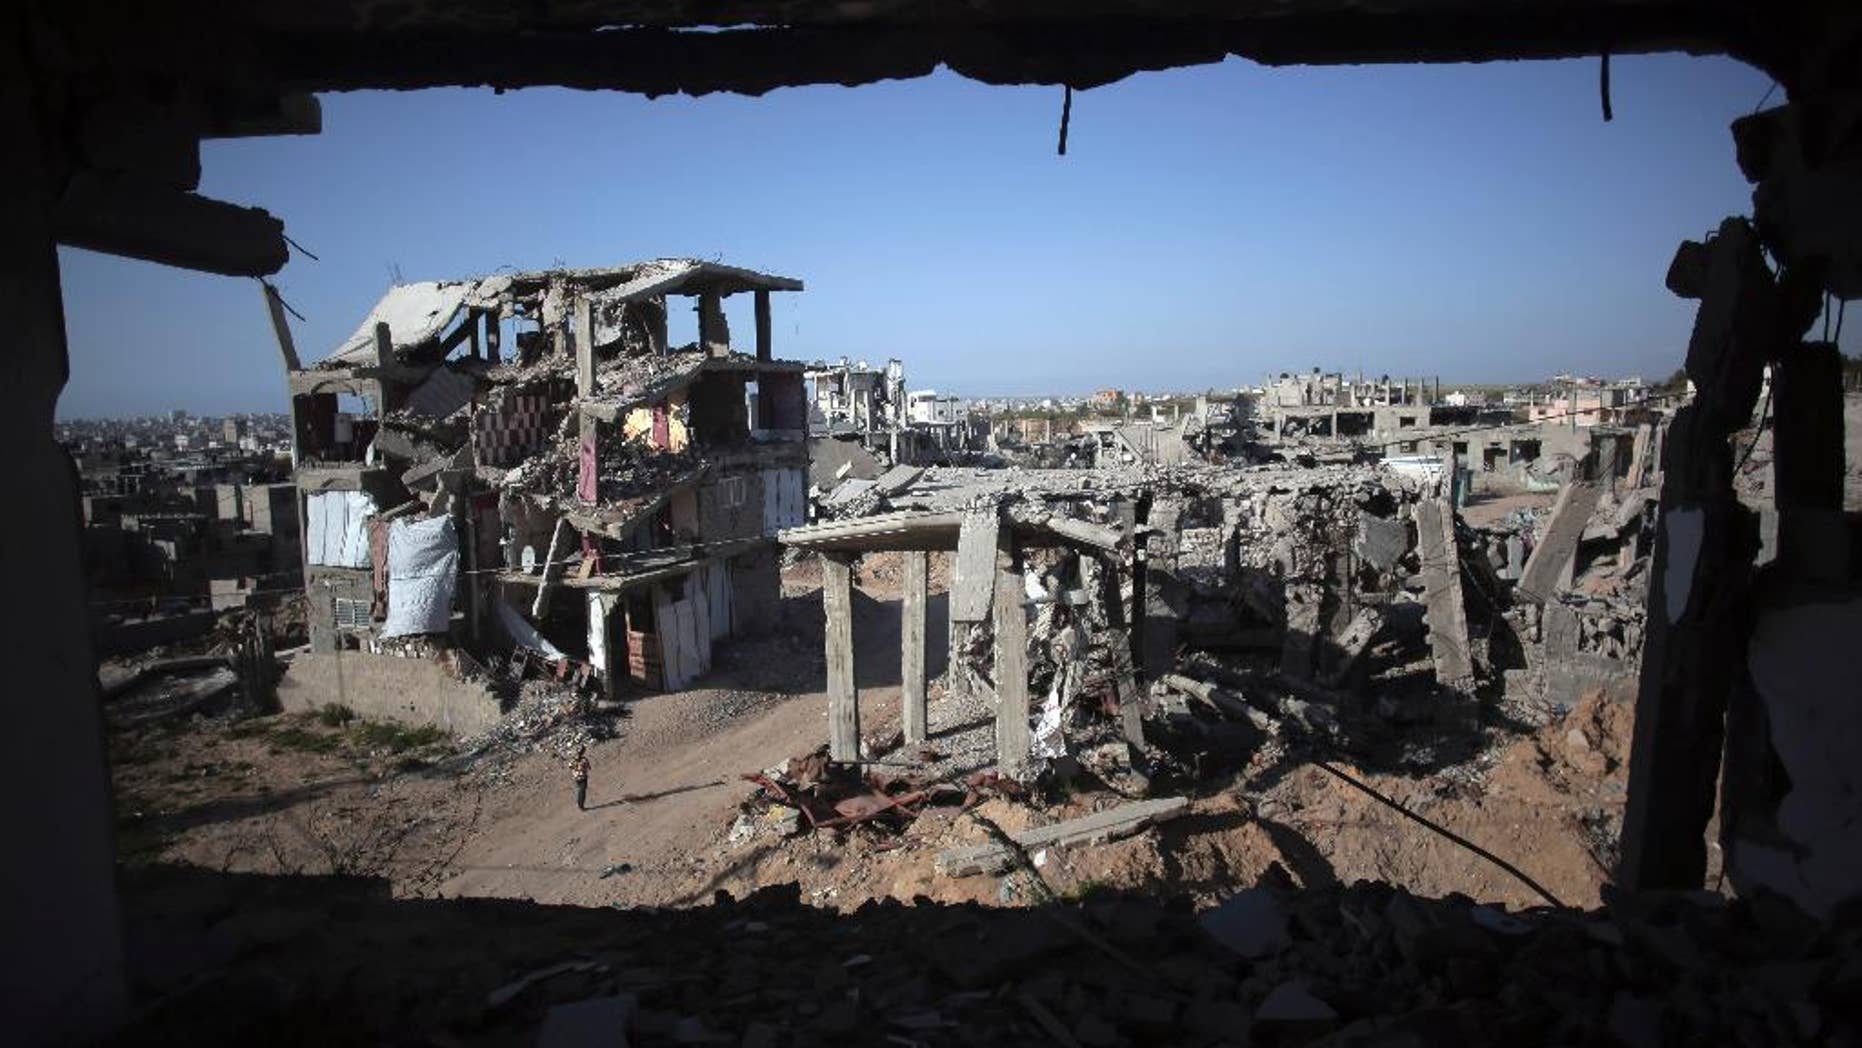 "File - In this March 30, 2015 file photo, a Palestinian girl walks next to destroyed houses, in the Shijaiyah neighborhood of Gaza City. The International Monetary Fund said in a Tuesday, May, 19, 2015 report, that reconstruction of the Gaza Strip is going ""far more slowly than expected"" after a devastating war between Israel and the Hamas militant group last year. The IMF said that just over a quarter of $3.5 billion pledged for reconstruction has been disbursed and urged donors to fulfill their pledges.  (AP Photo/Khalil Hamra, File)"